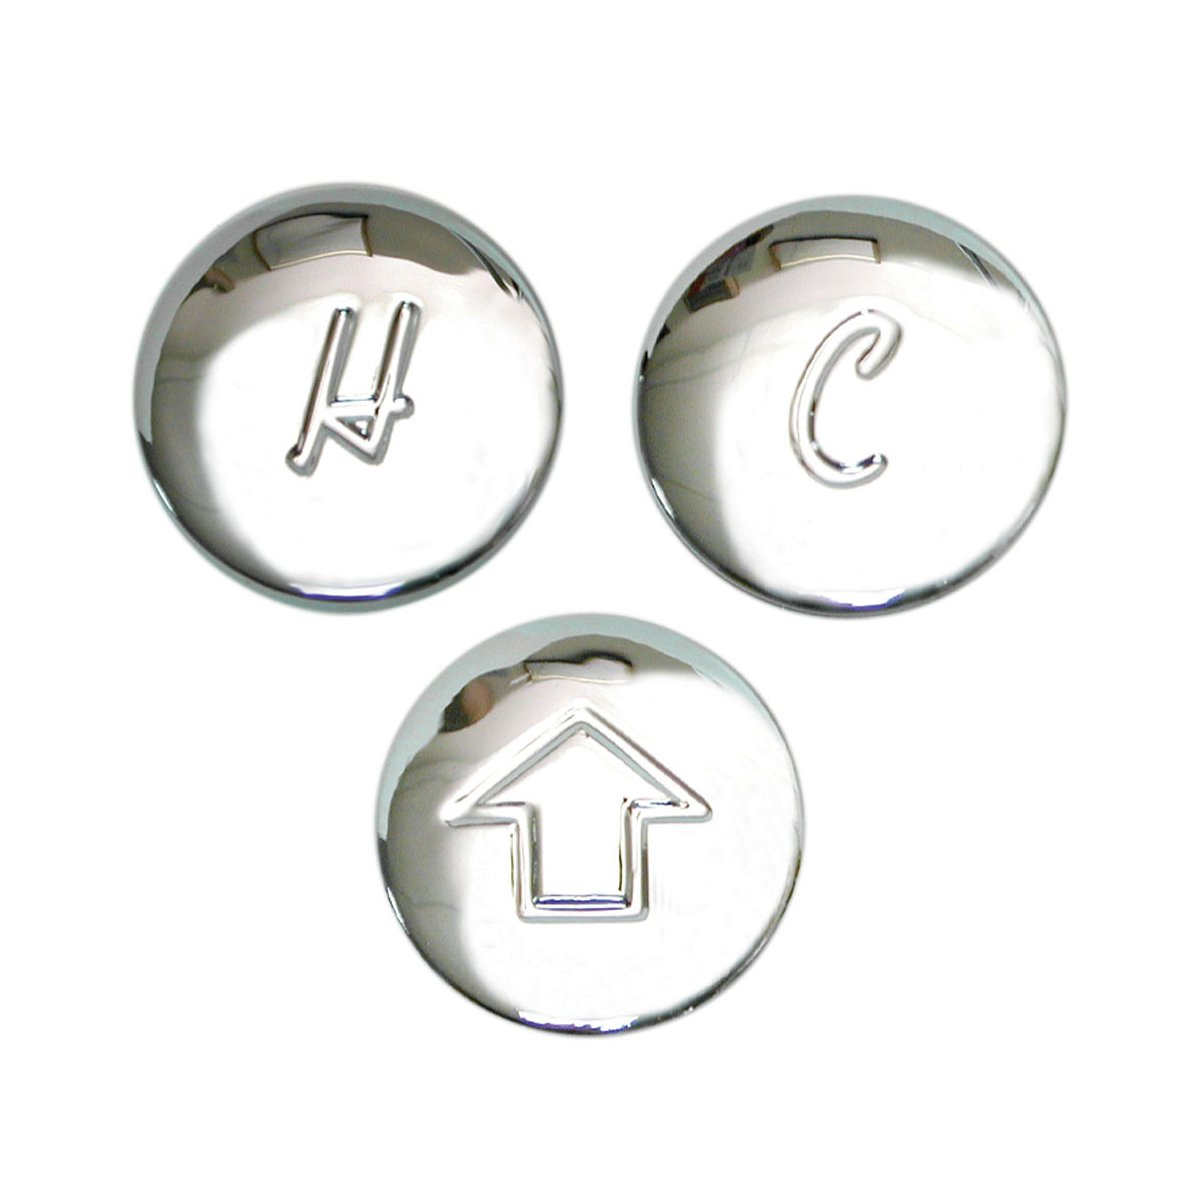 Danco 80682 Index Buttons for Price Pfister Faucets - Faucet Index ...